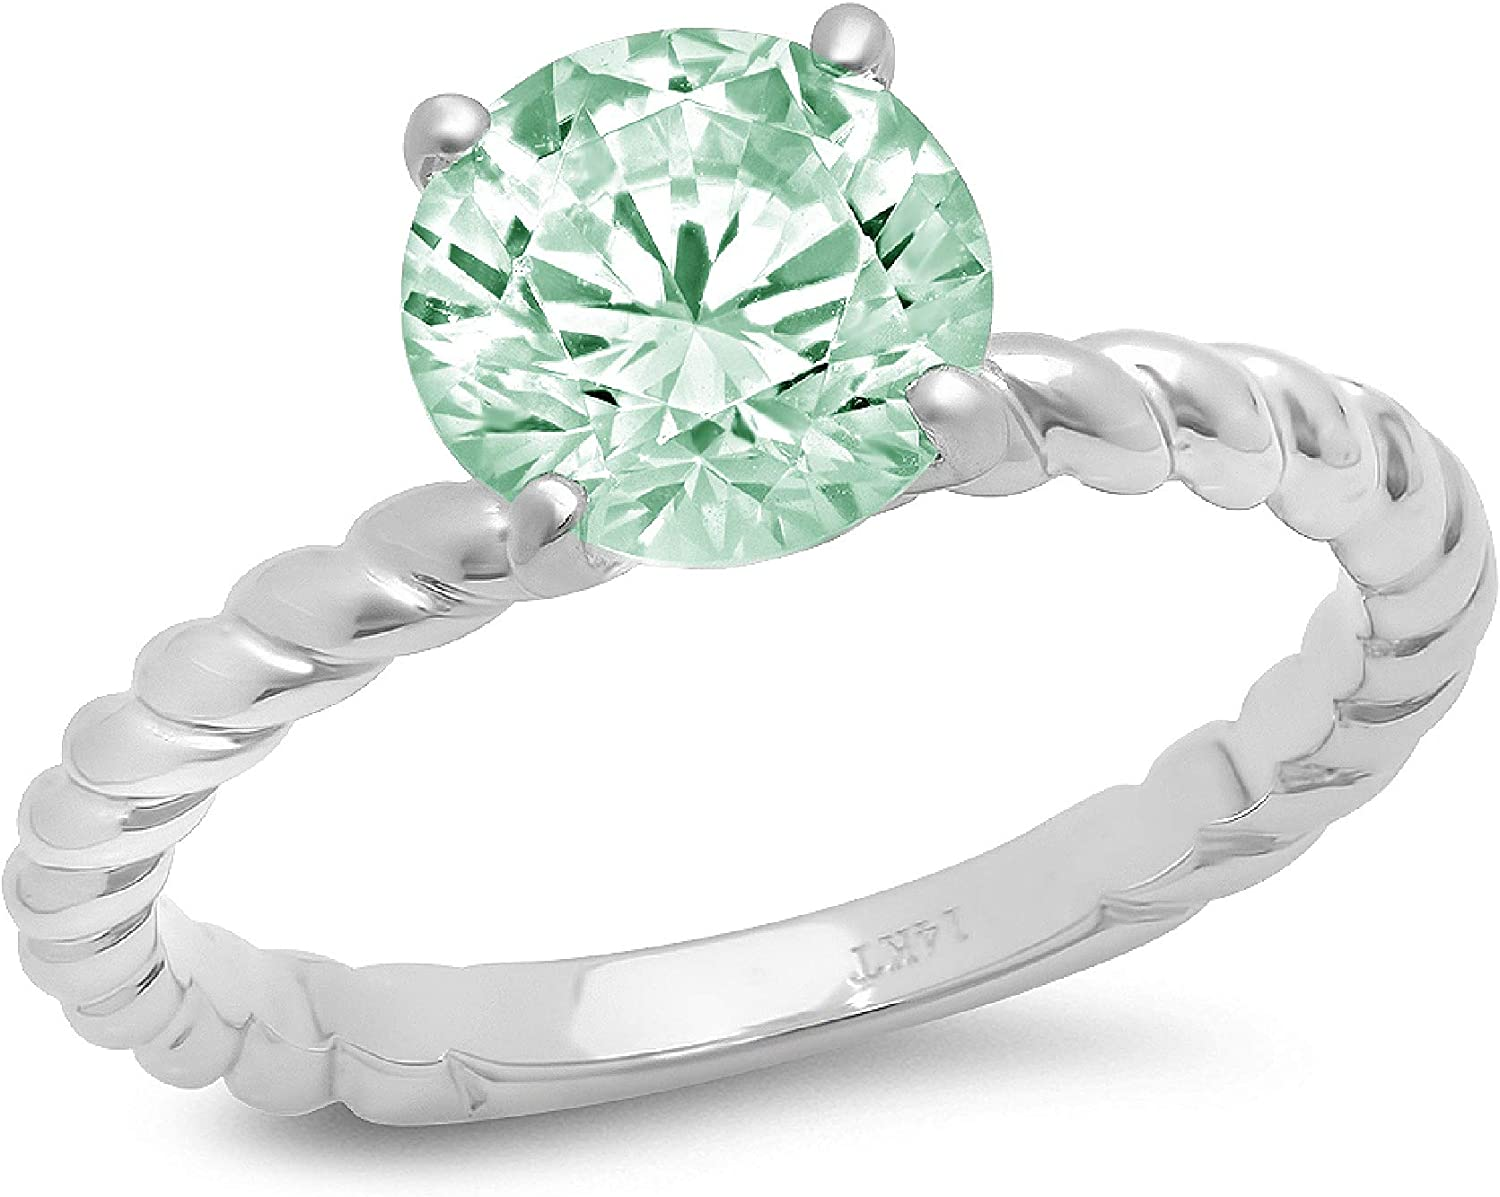 1.9ct Round Cut Solitaire Rope Twisted Knot Light Sea Green Simulated Diamond Cubic Zirconia Ideal VVS1 D 4-Prong Engagement Wedding Bridal Promise Anniversary Ring Solid 14k White Gold for Women